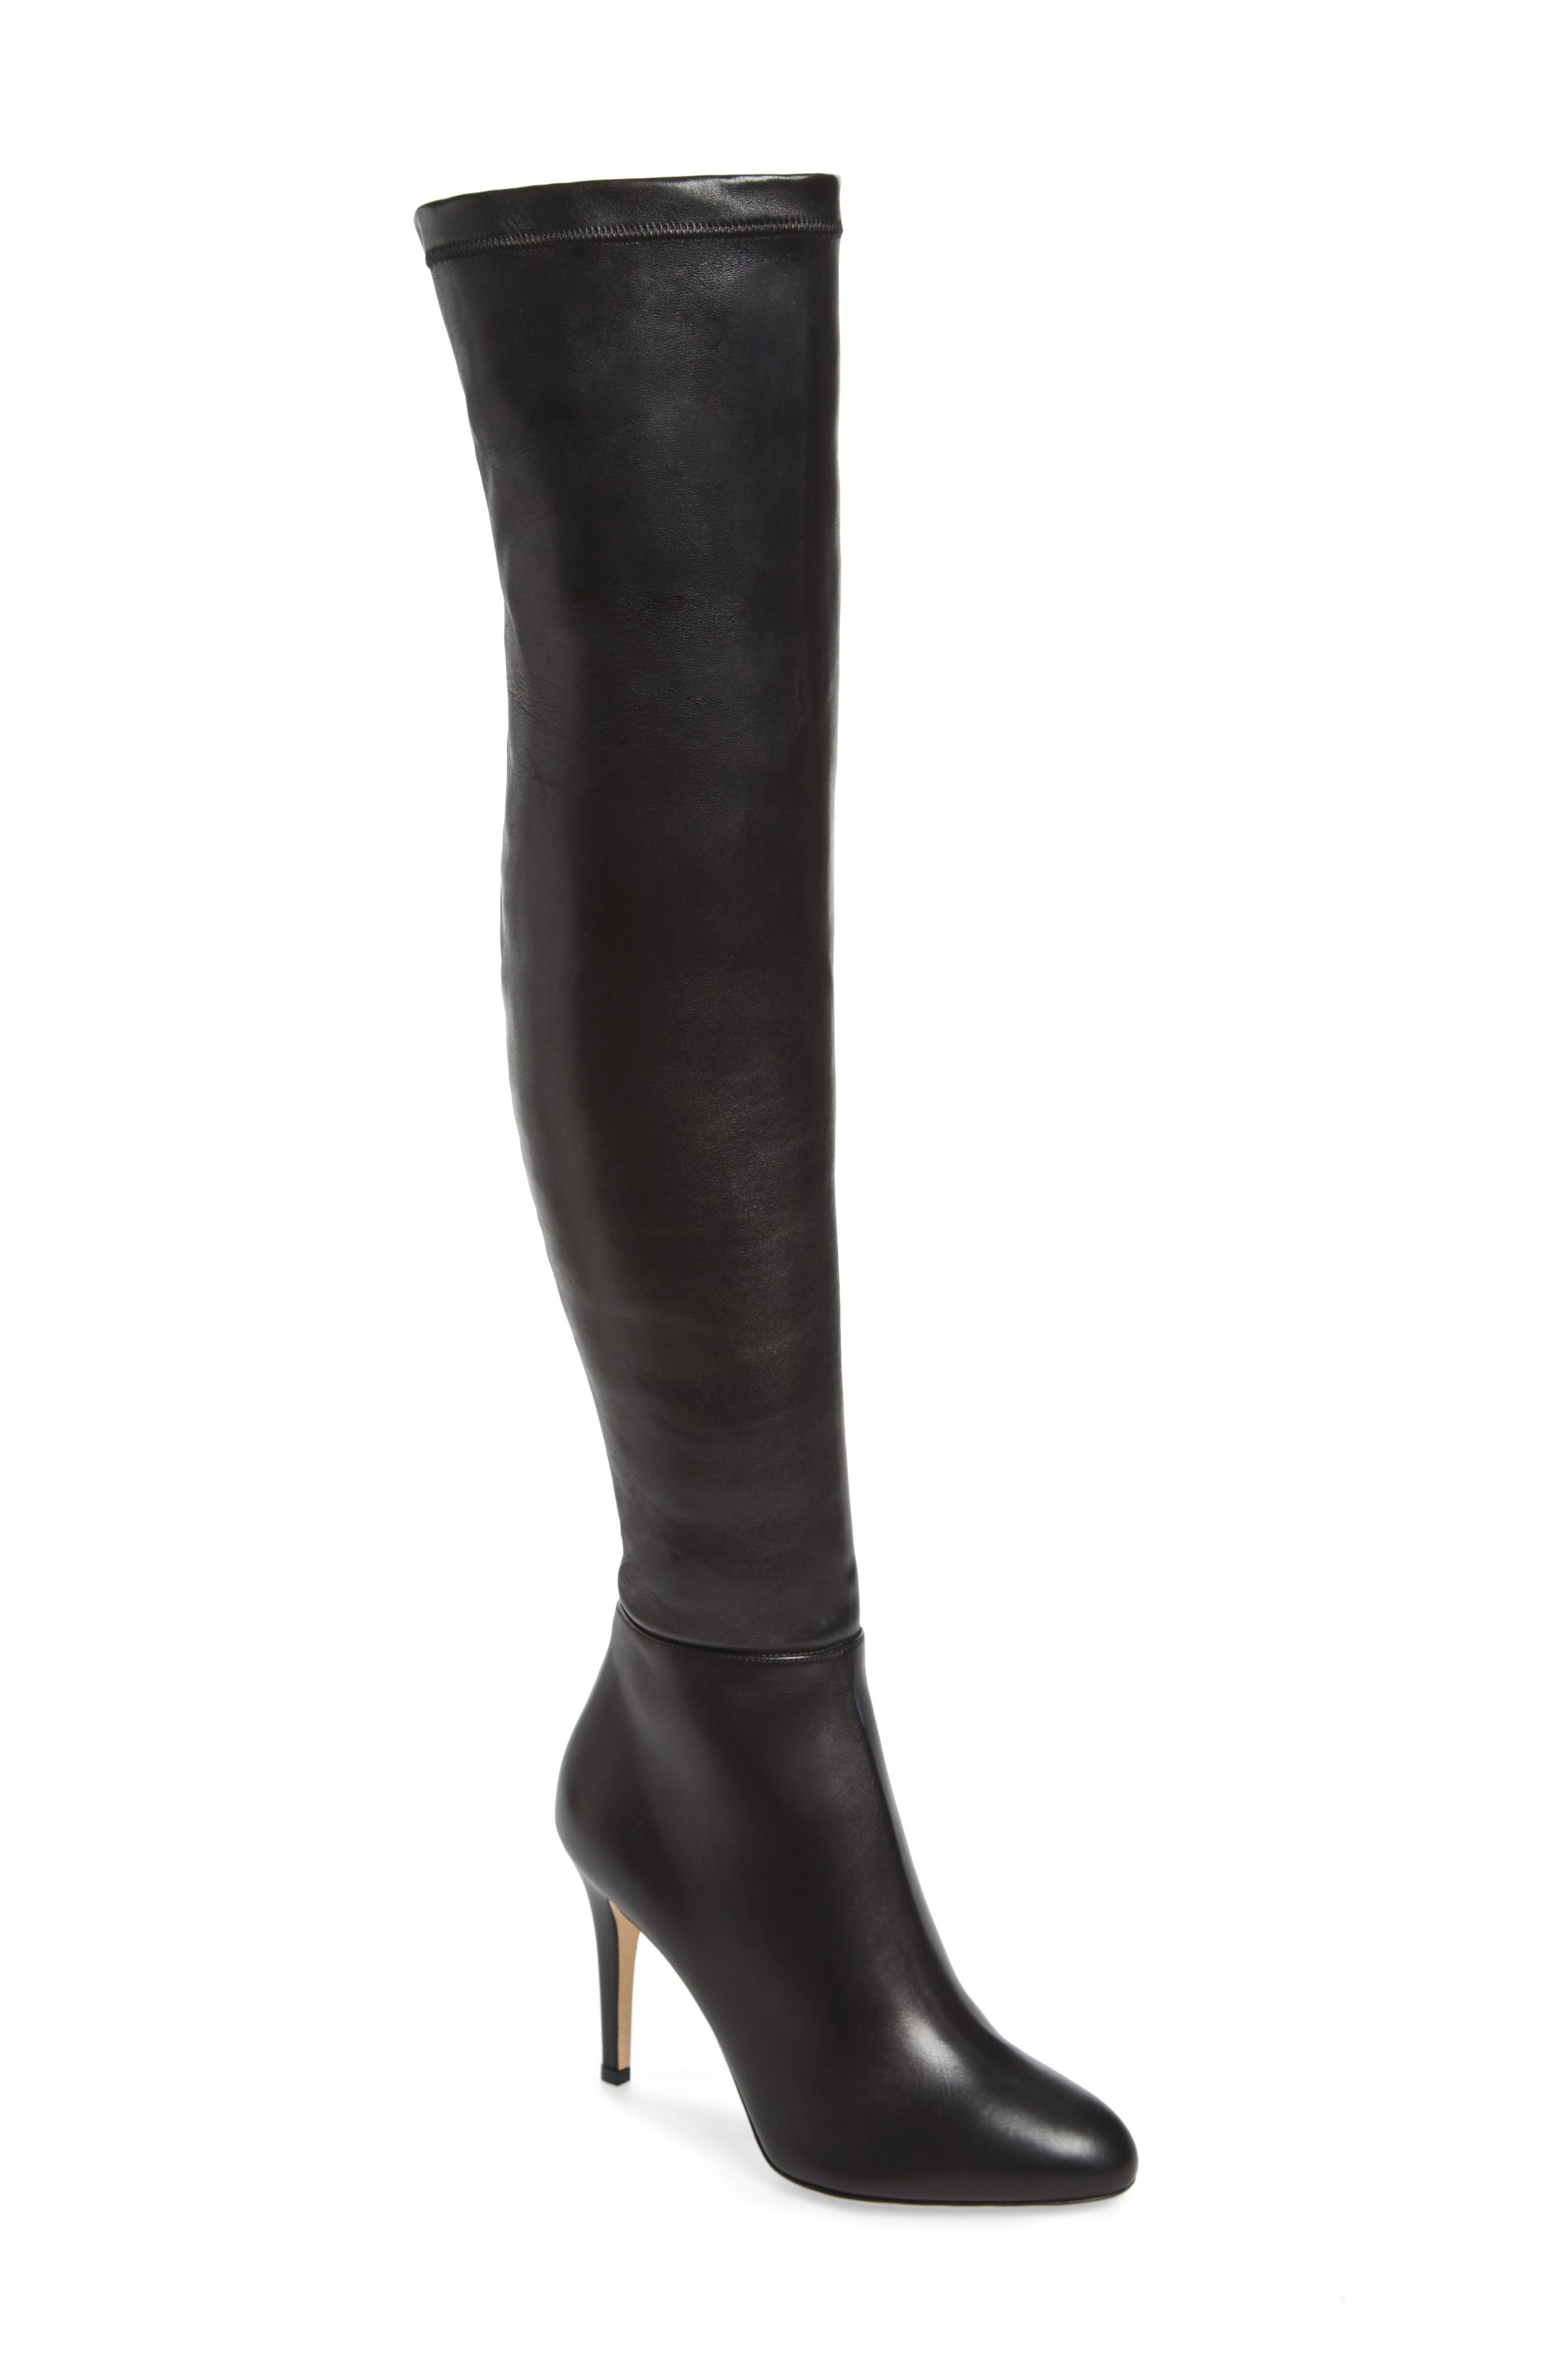 Main Image - Jimmy Choo Over-the-Knee Boot (Women)